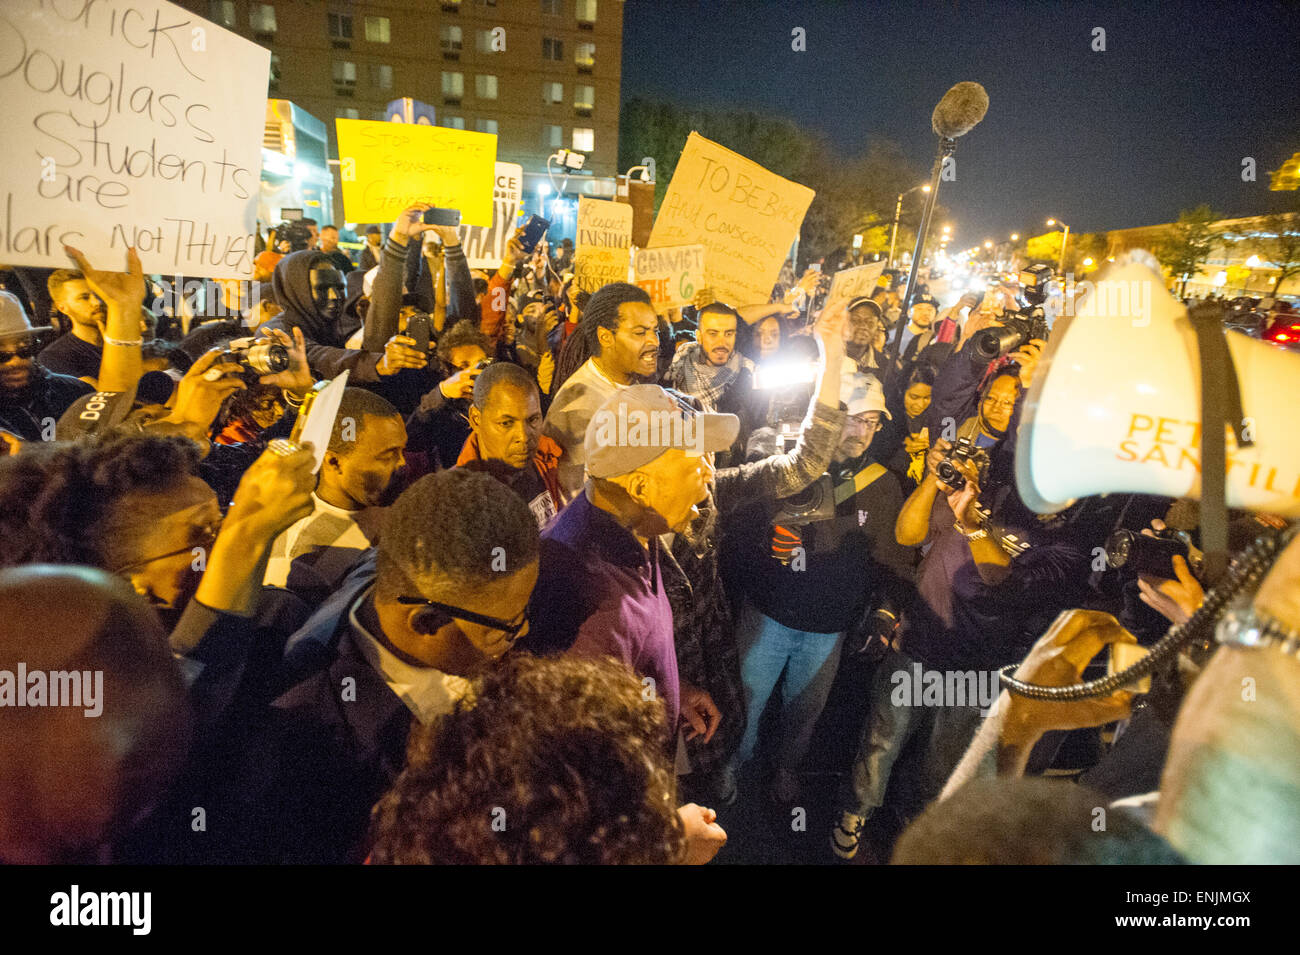 BALTIMORE MARYLAND - Civil unrest as protesters gather at Pennsylvania and North Ave. to protest the death of Freddie - Stock Image